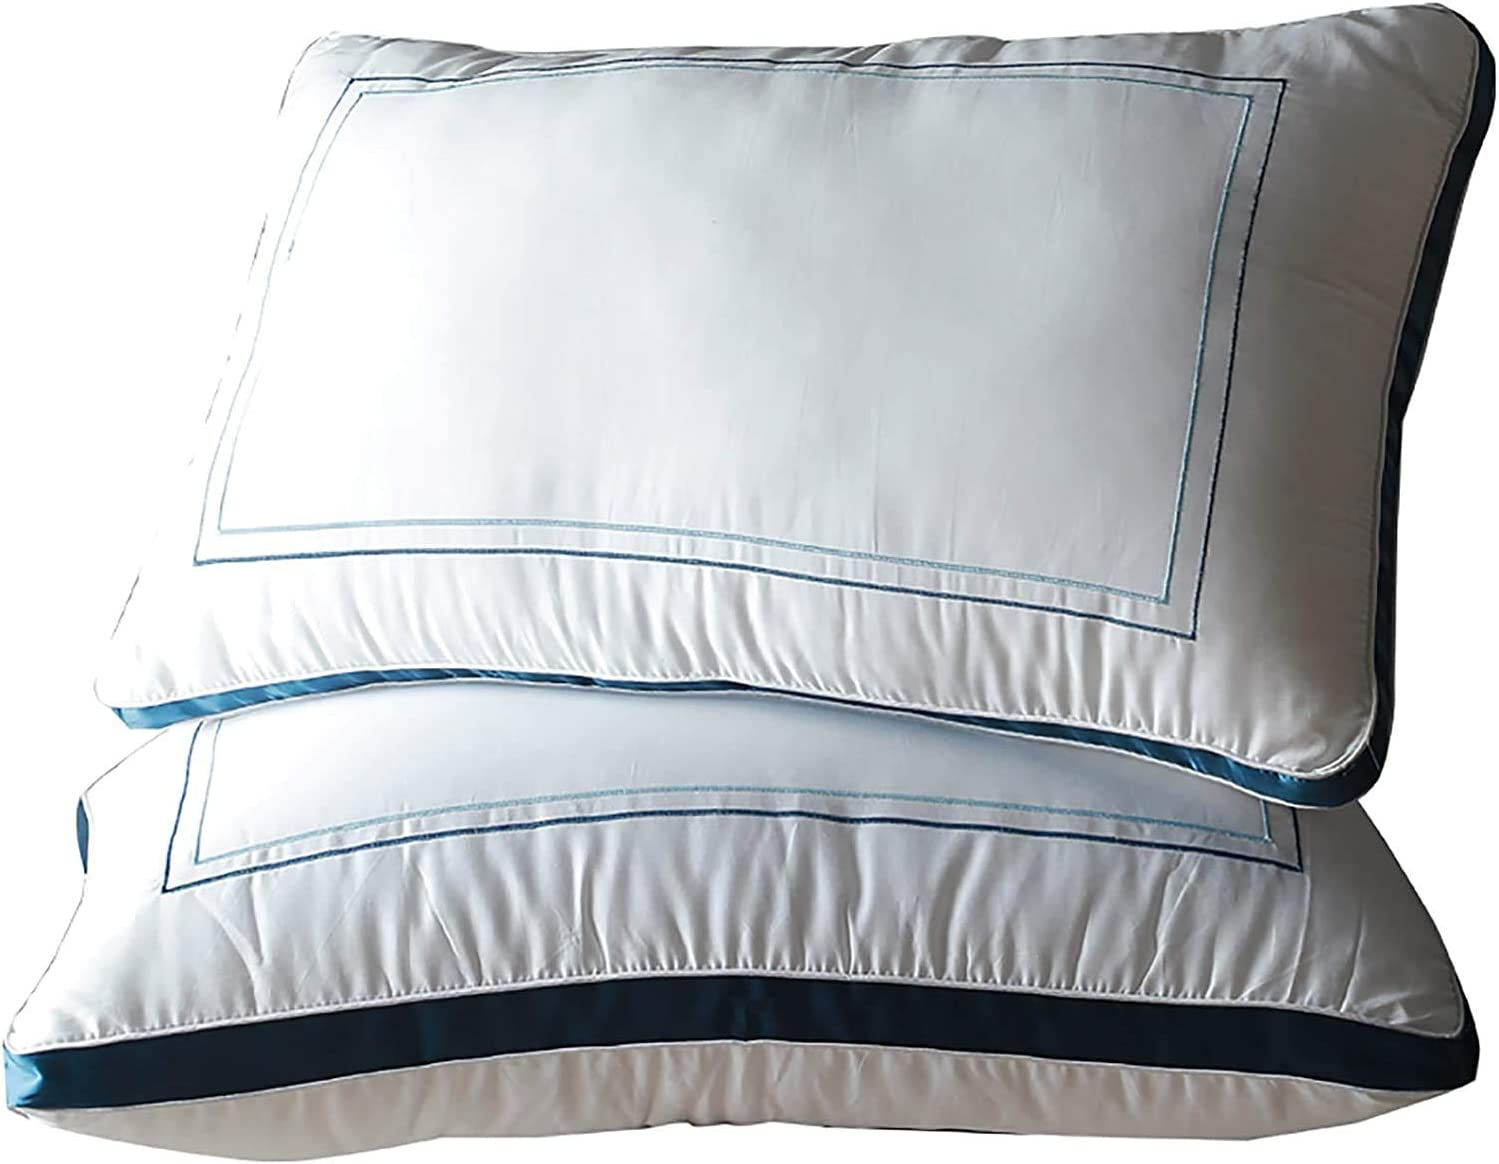 OSVINO Sleeping Pillows Discount Max 40% OFF is also underway 2 Pack Pi Hypoallergenic Guested Striped